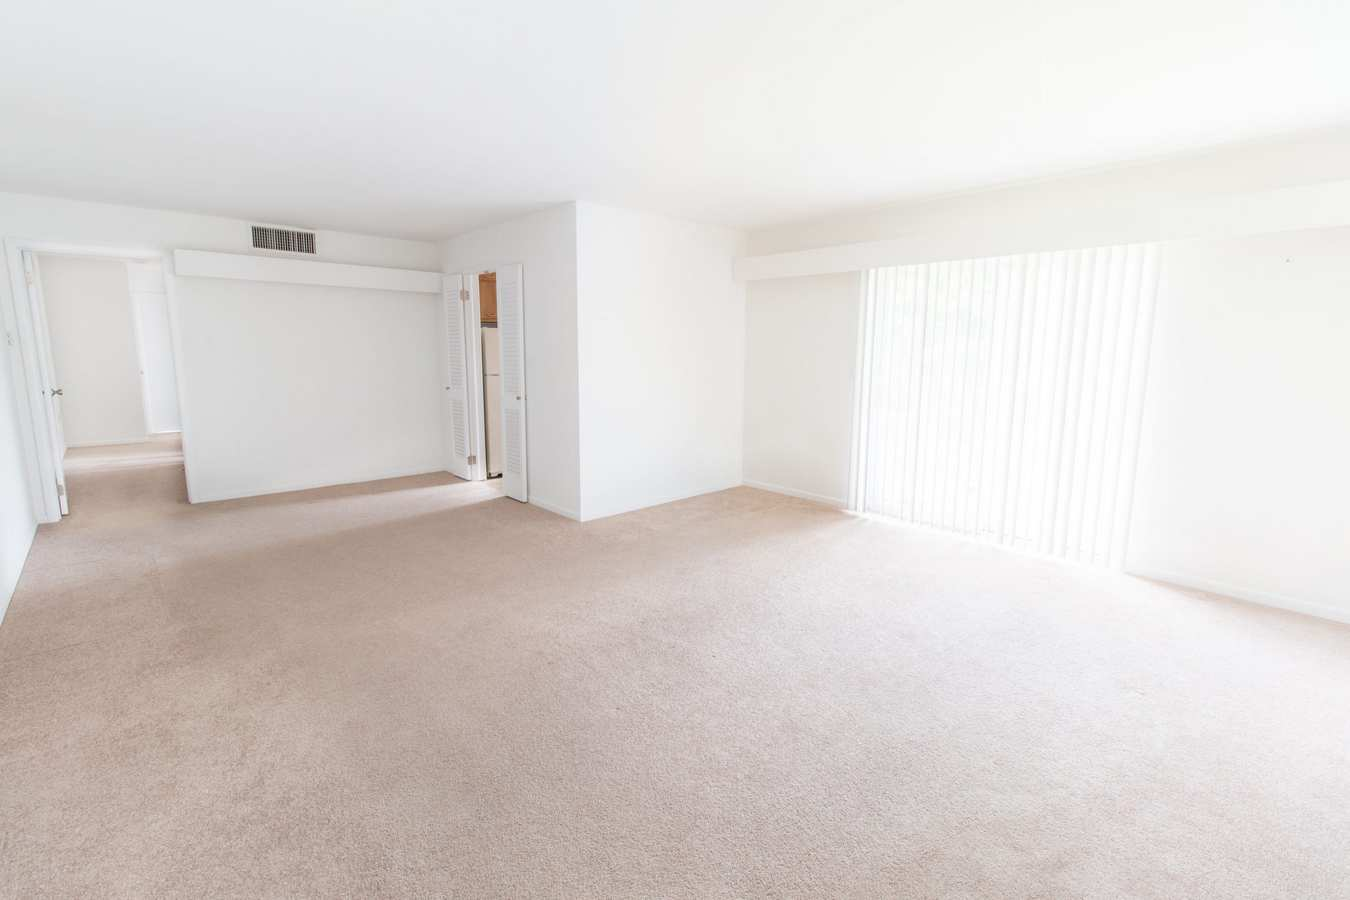 Spacious floor plans at Corliss Apartments in Phillipsburg, New Jersey